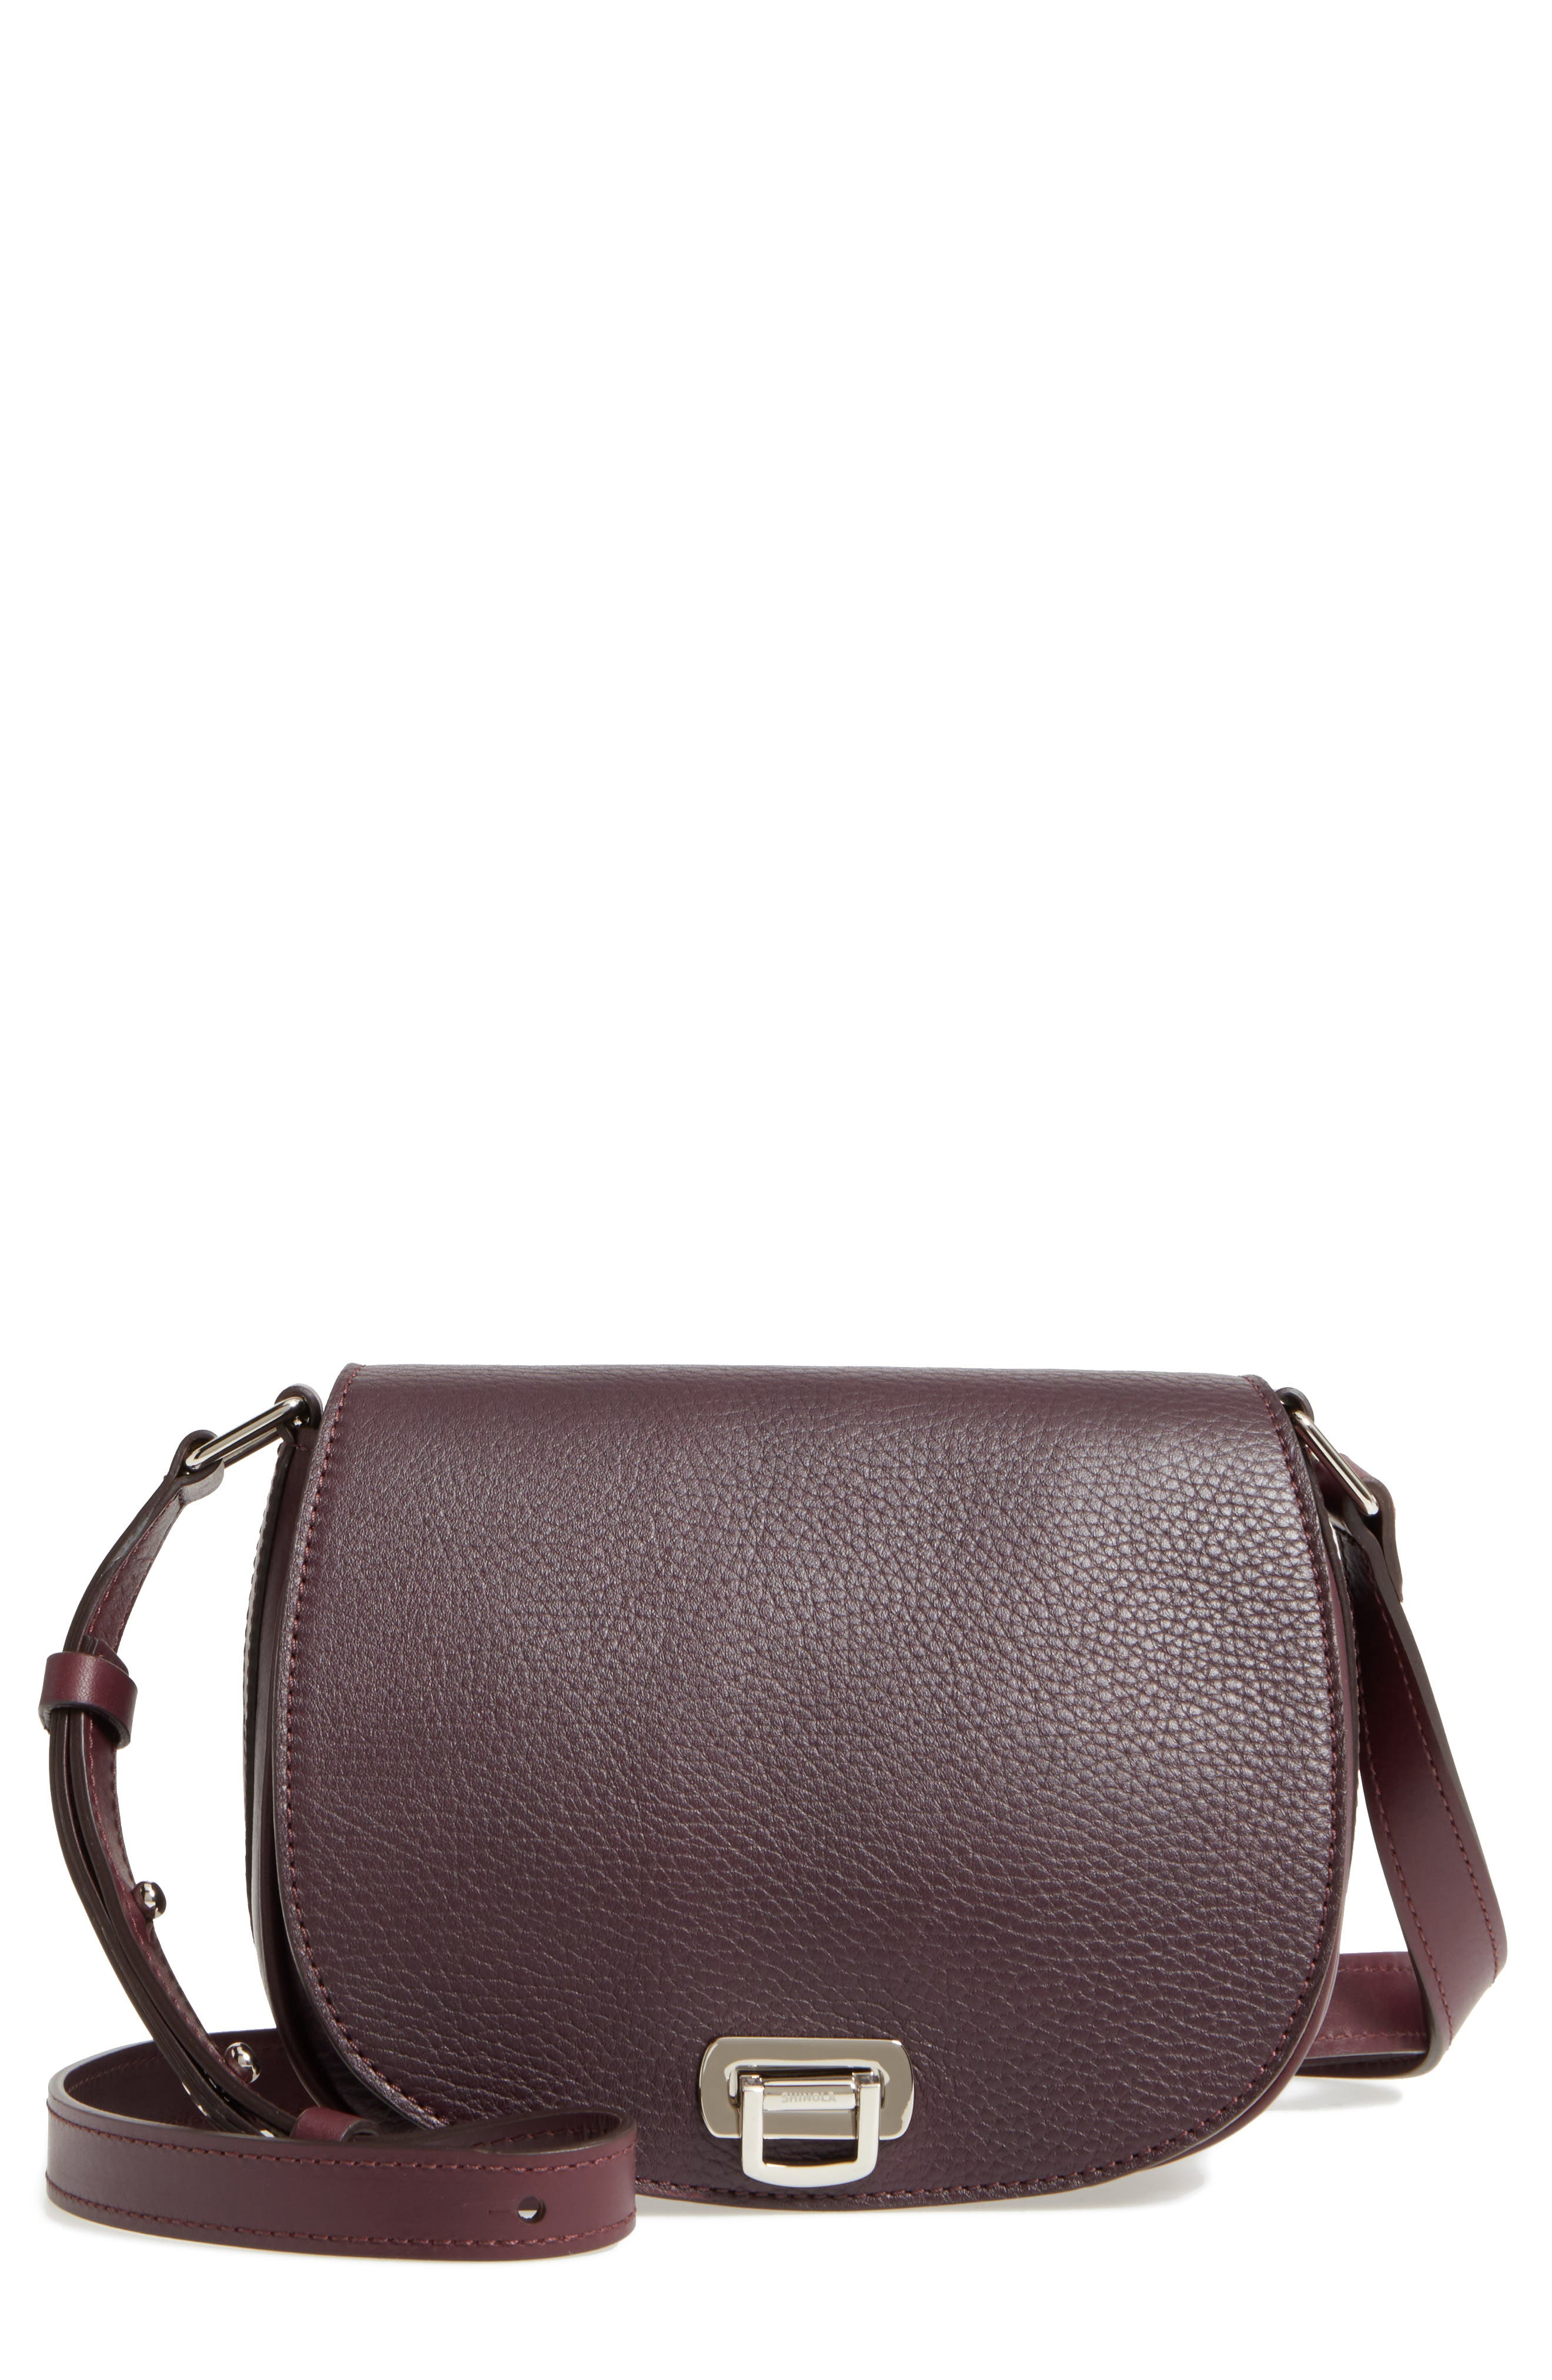 Calfskin Leather Shoulder Bag,                             Main thumbnail 1, color,                             Aubergine